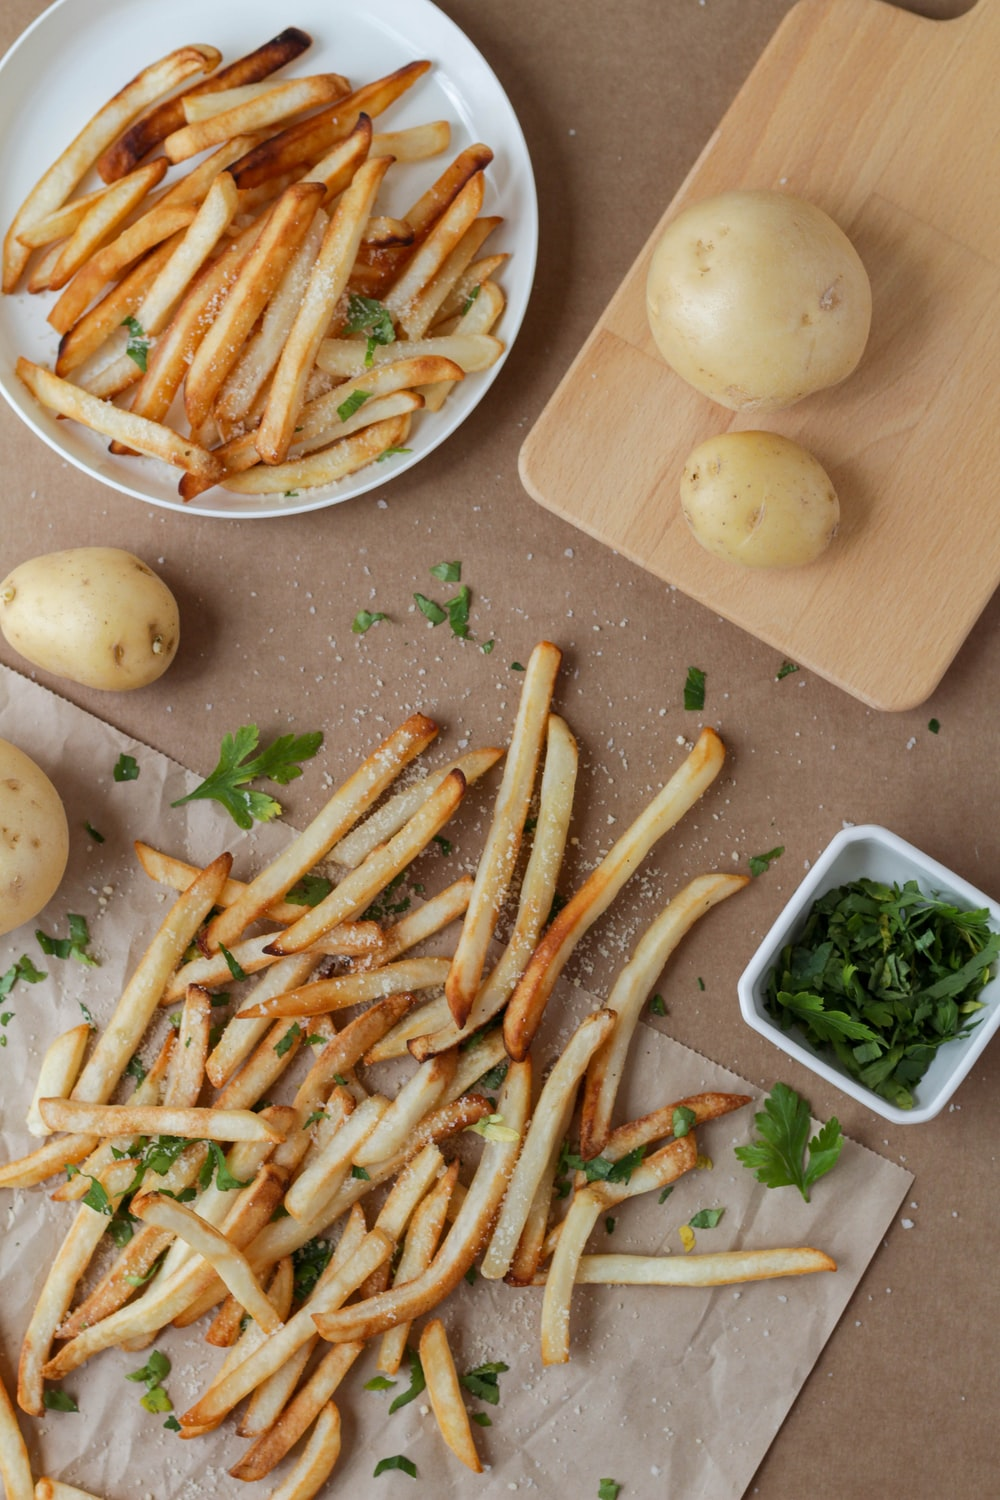 potato fries and sliced of vegetables on white ceramic plate